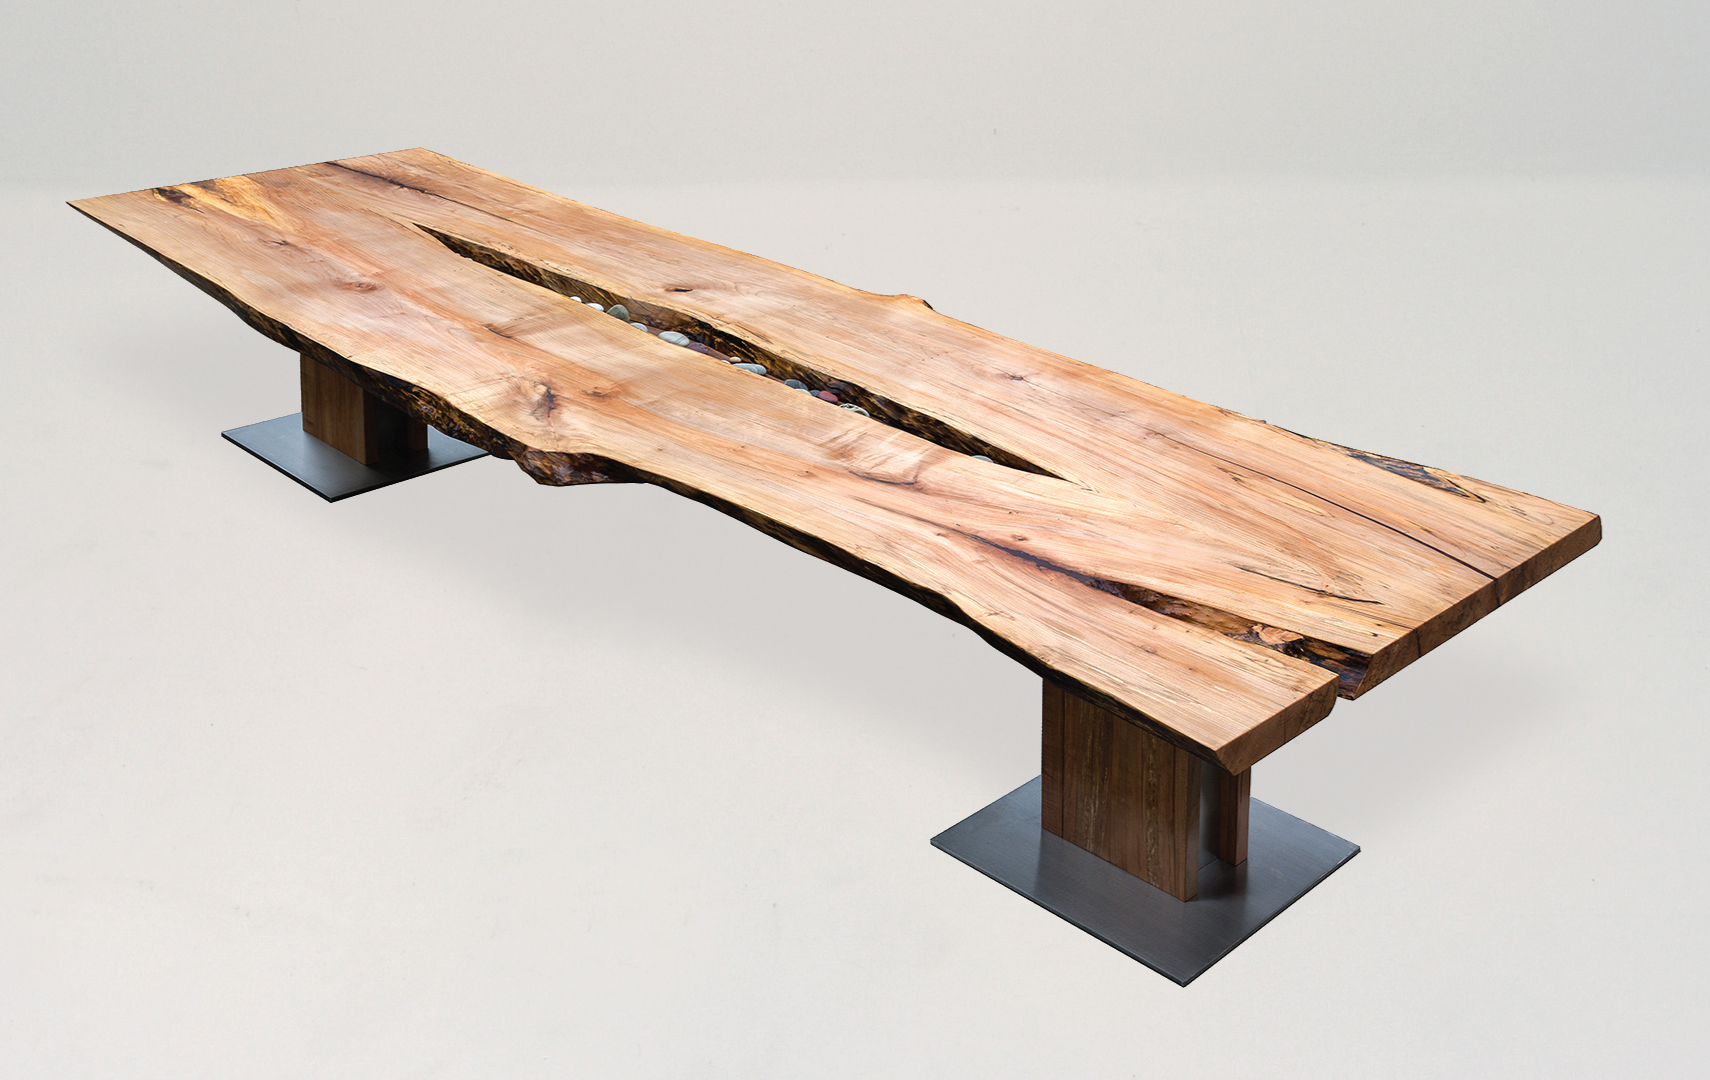 Custom Wood Dining Tables Vancouver - Table Designs